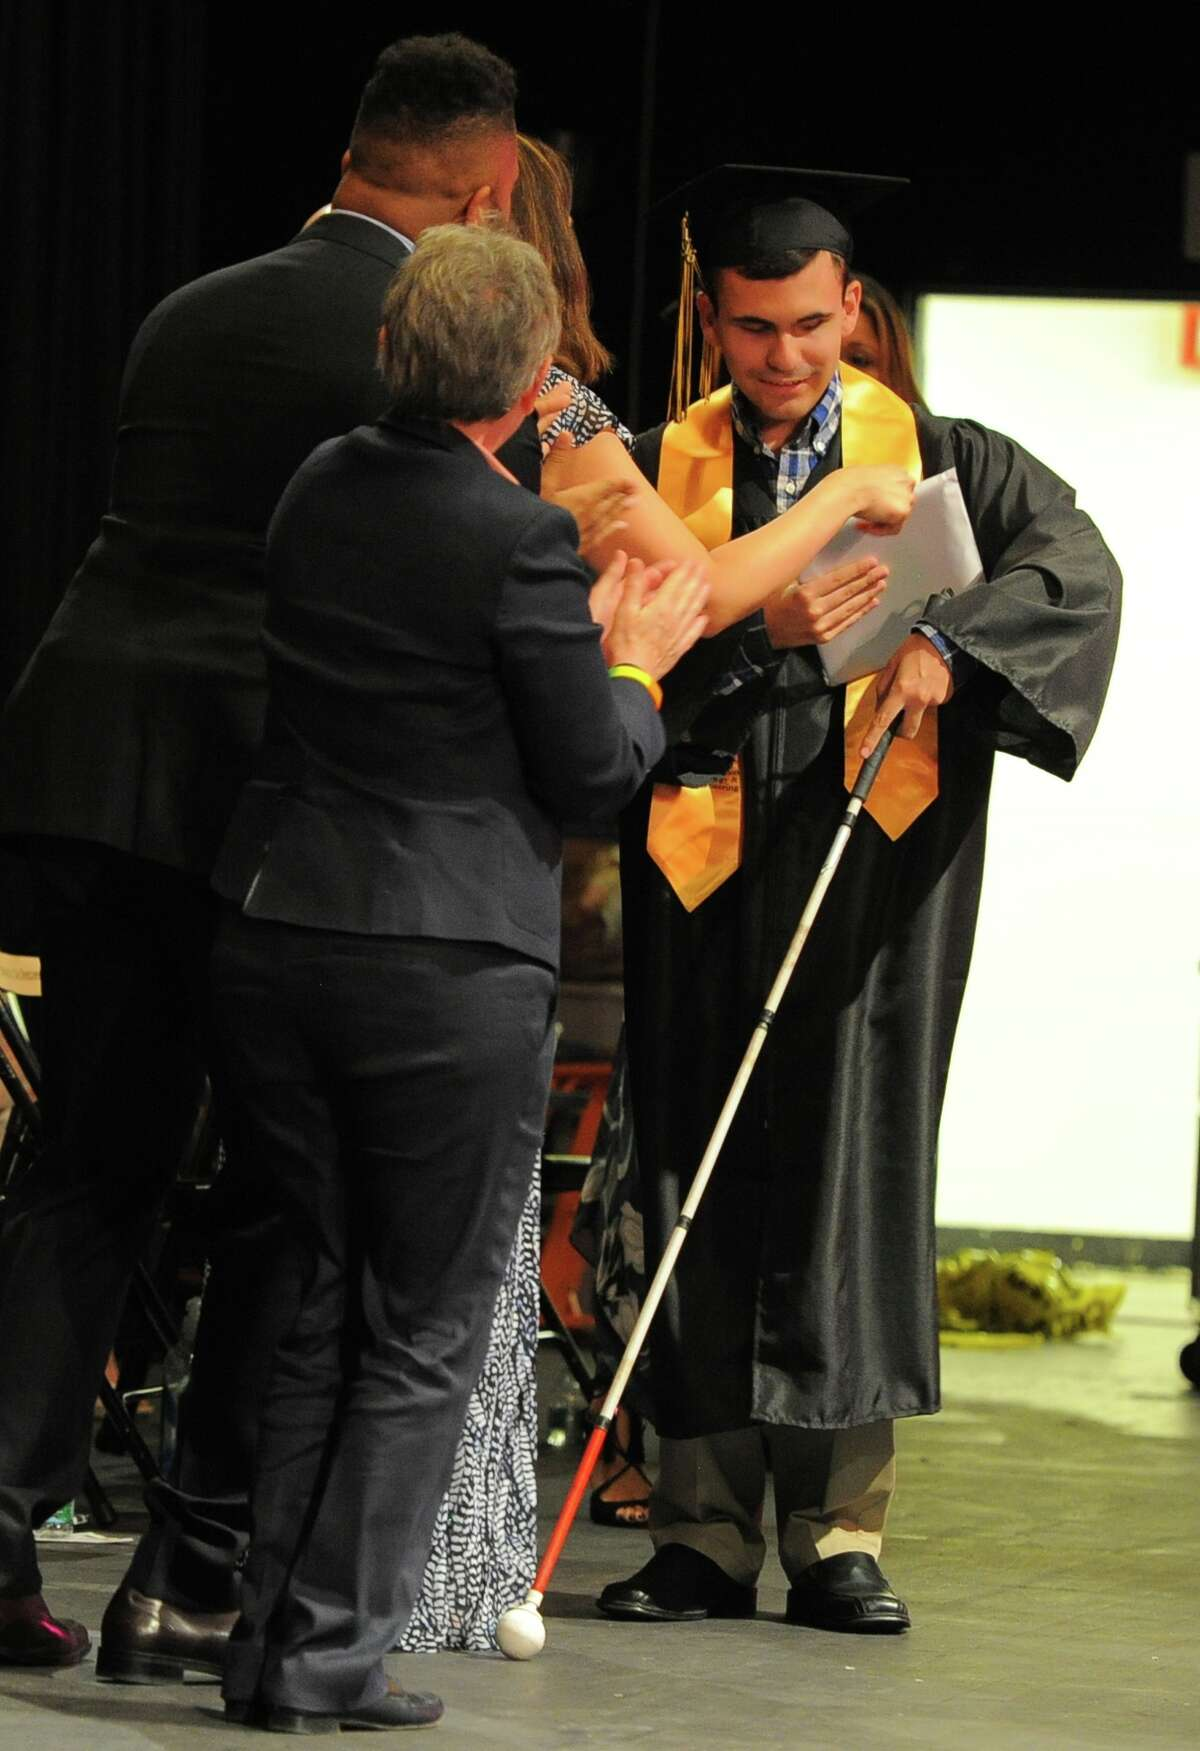 Brian Martin his handed his diploma as he makes his way across stage to the cheers and sounds of a standing ovation by his peers and audience during the Academy of Information Technology and Engineering Class of 2016 commencement at the school in Stamford, Conn., on Tuesday, June 14, 2016. Martin express it was his goal to navigate the stage unassisted when it came time to receiving his diploma.